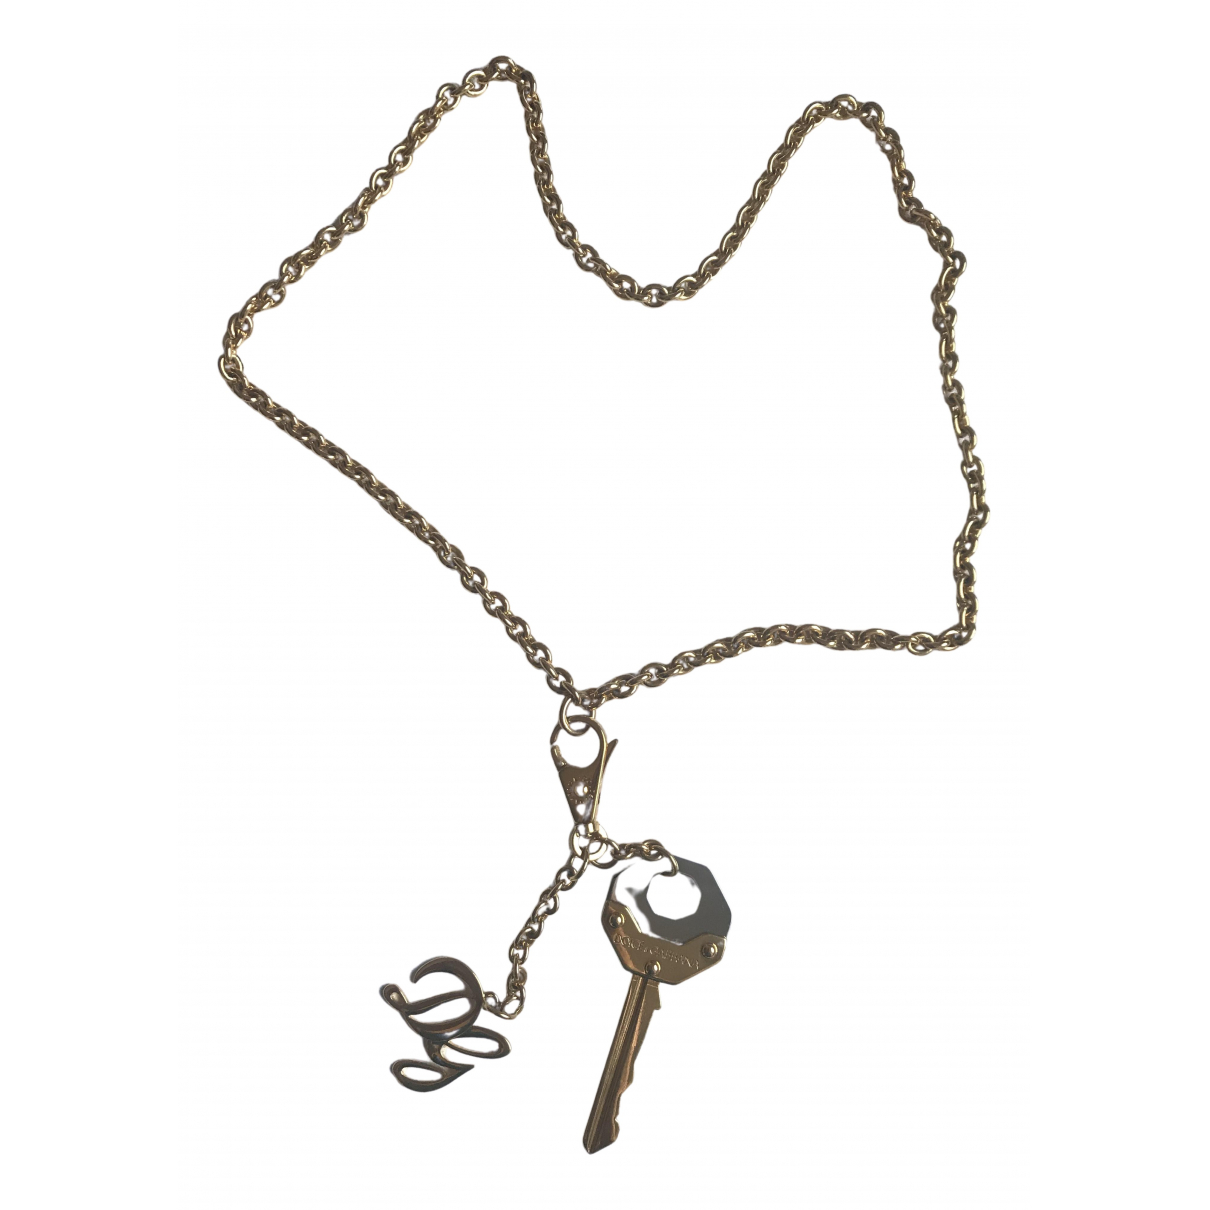 Dolce & Gabbana N Gold Steel necklace for Women N